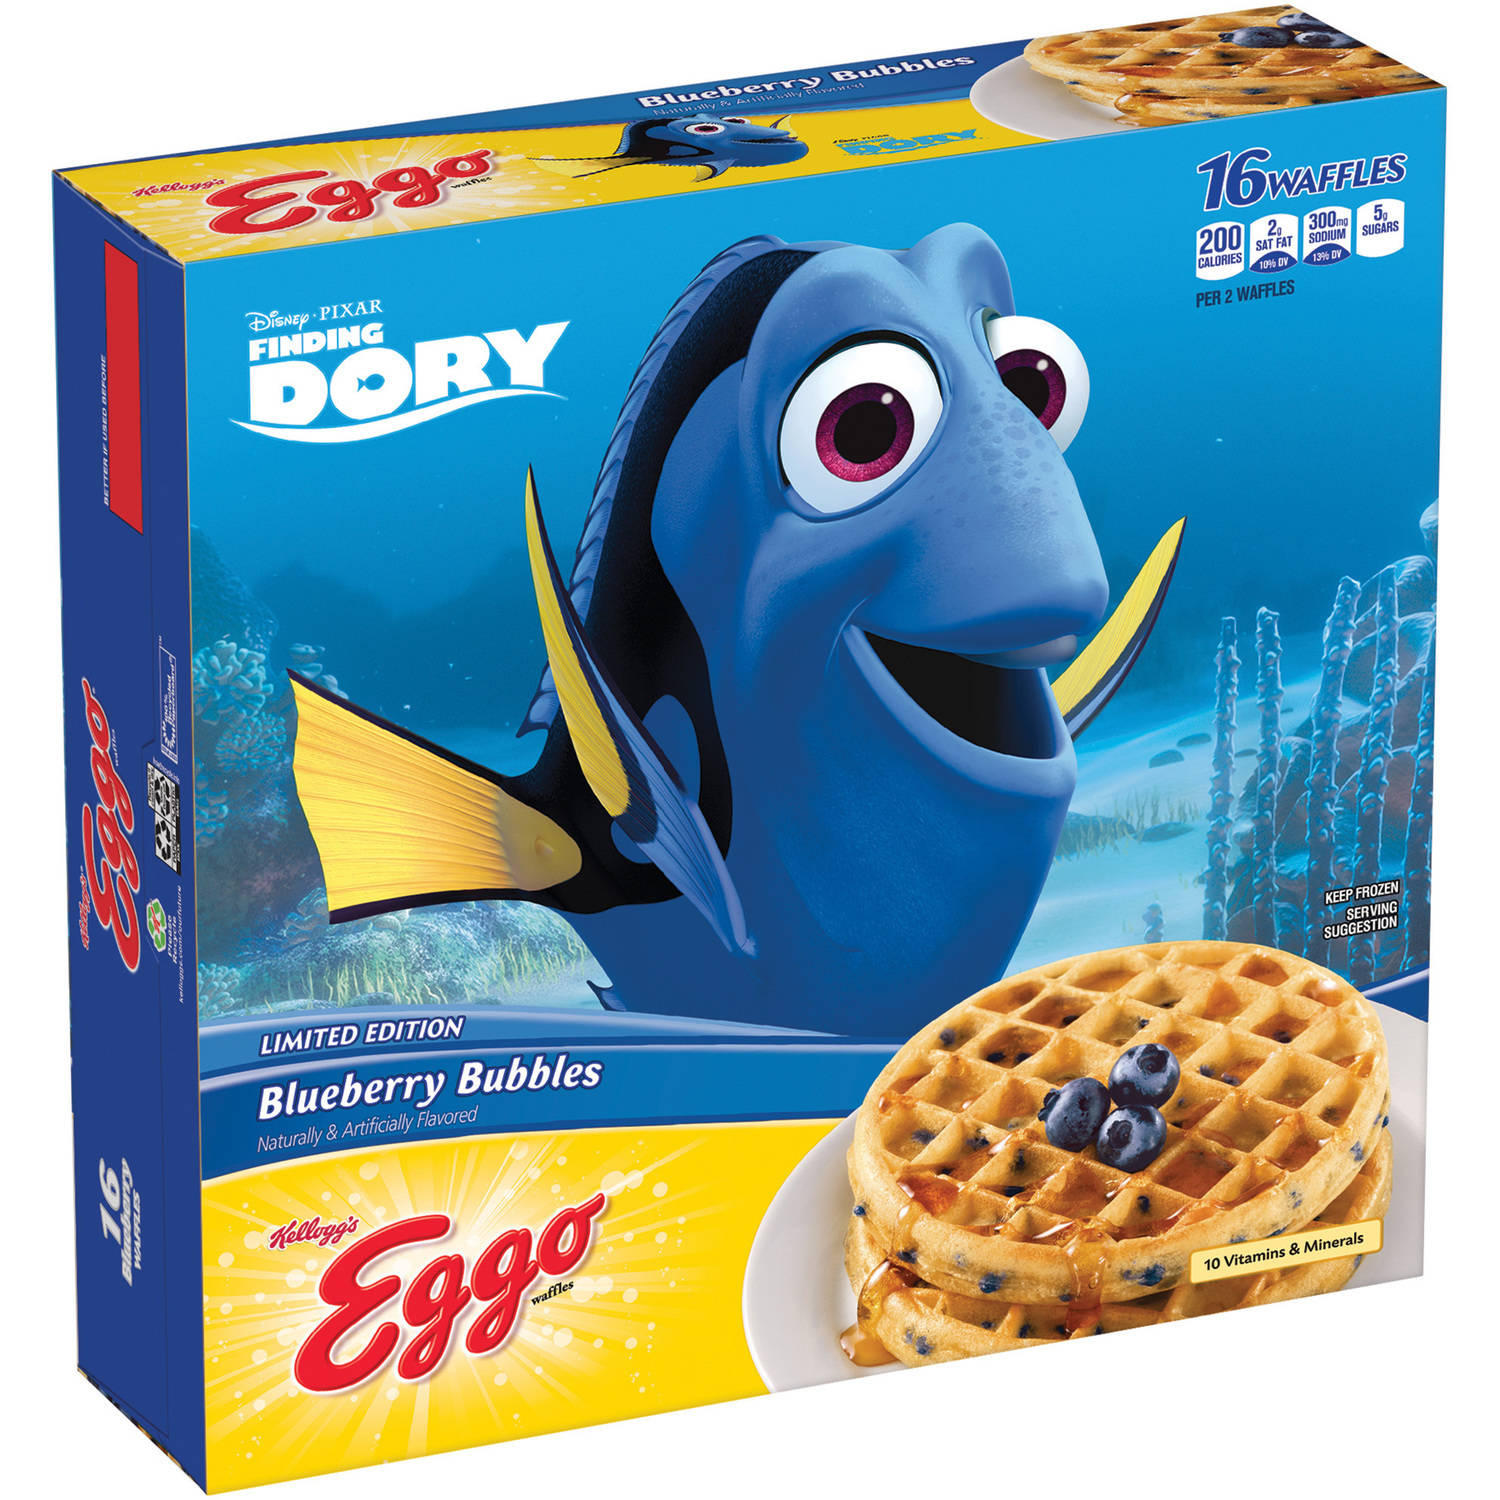 Kellogg's Eggo Limited Edition Blueberry Waffles, 16 count, 19.7 oz